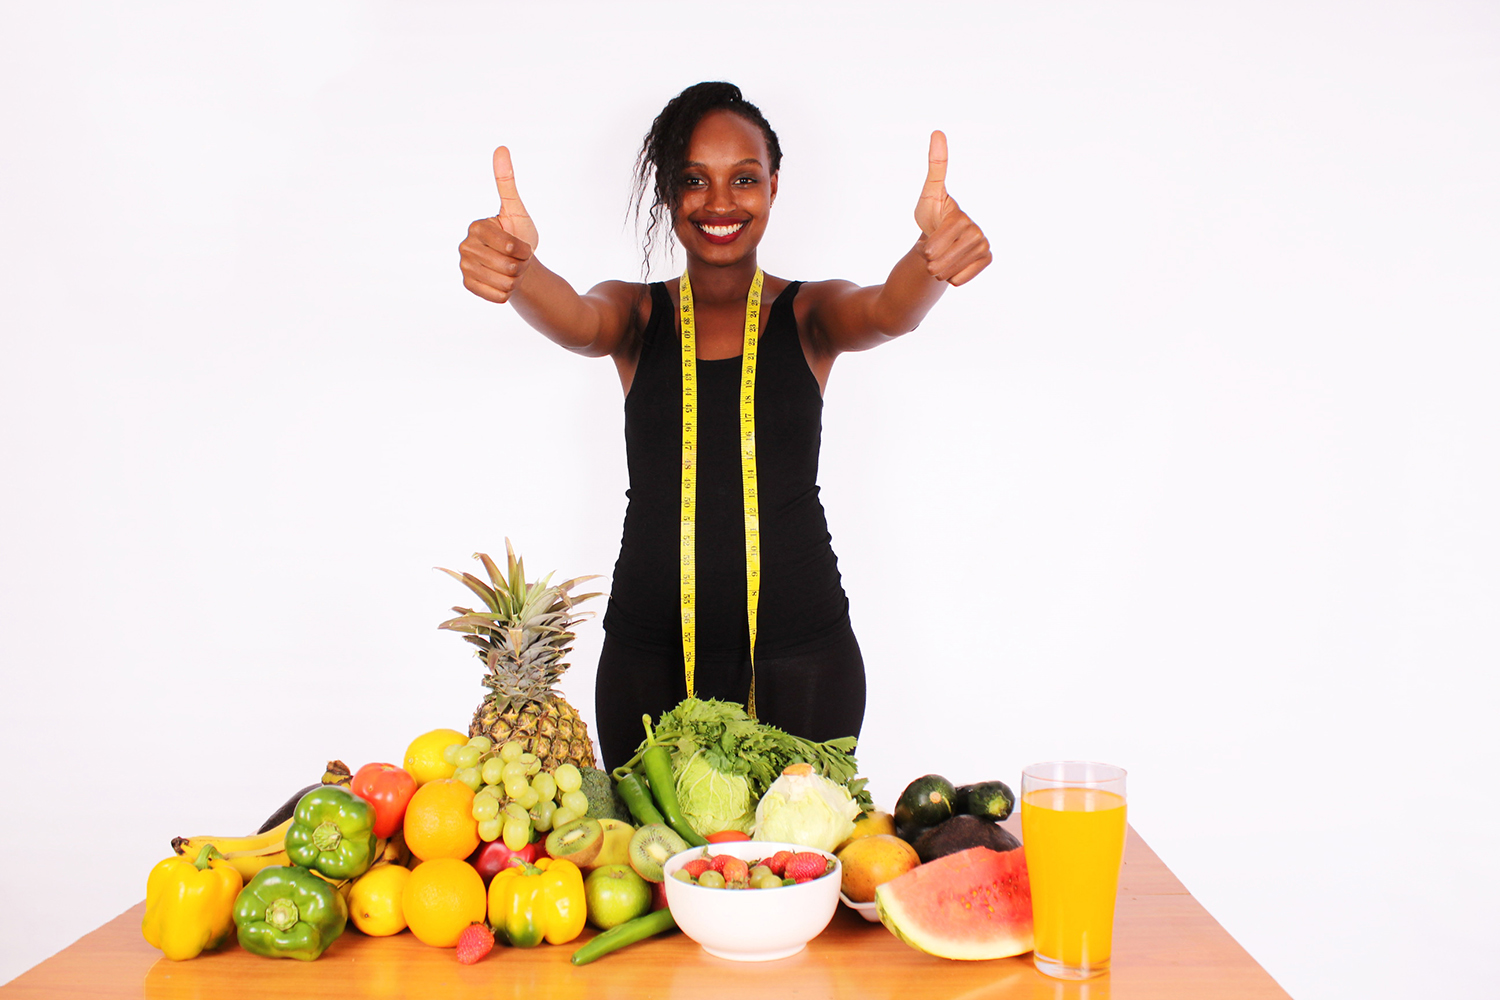 Healthy woman gives thumbs up for fruits and vegetables